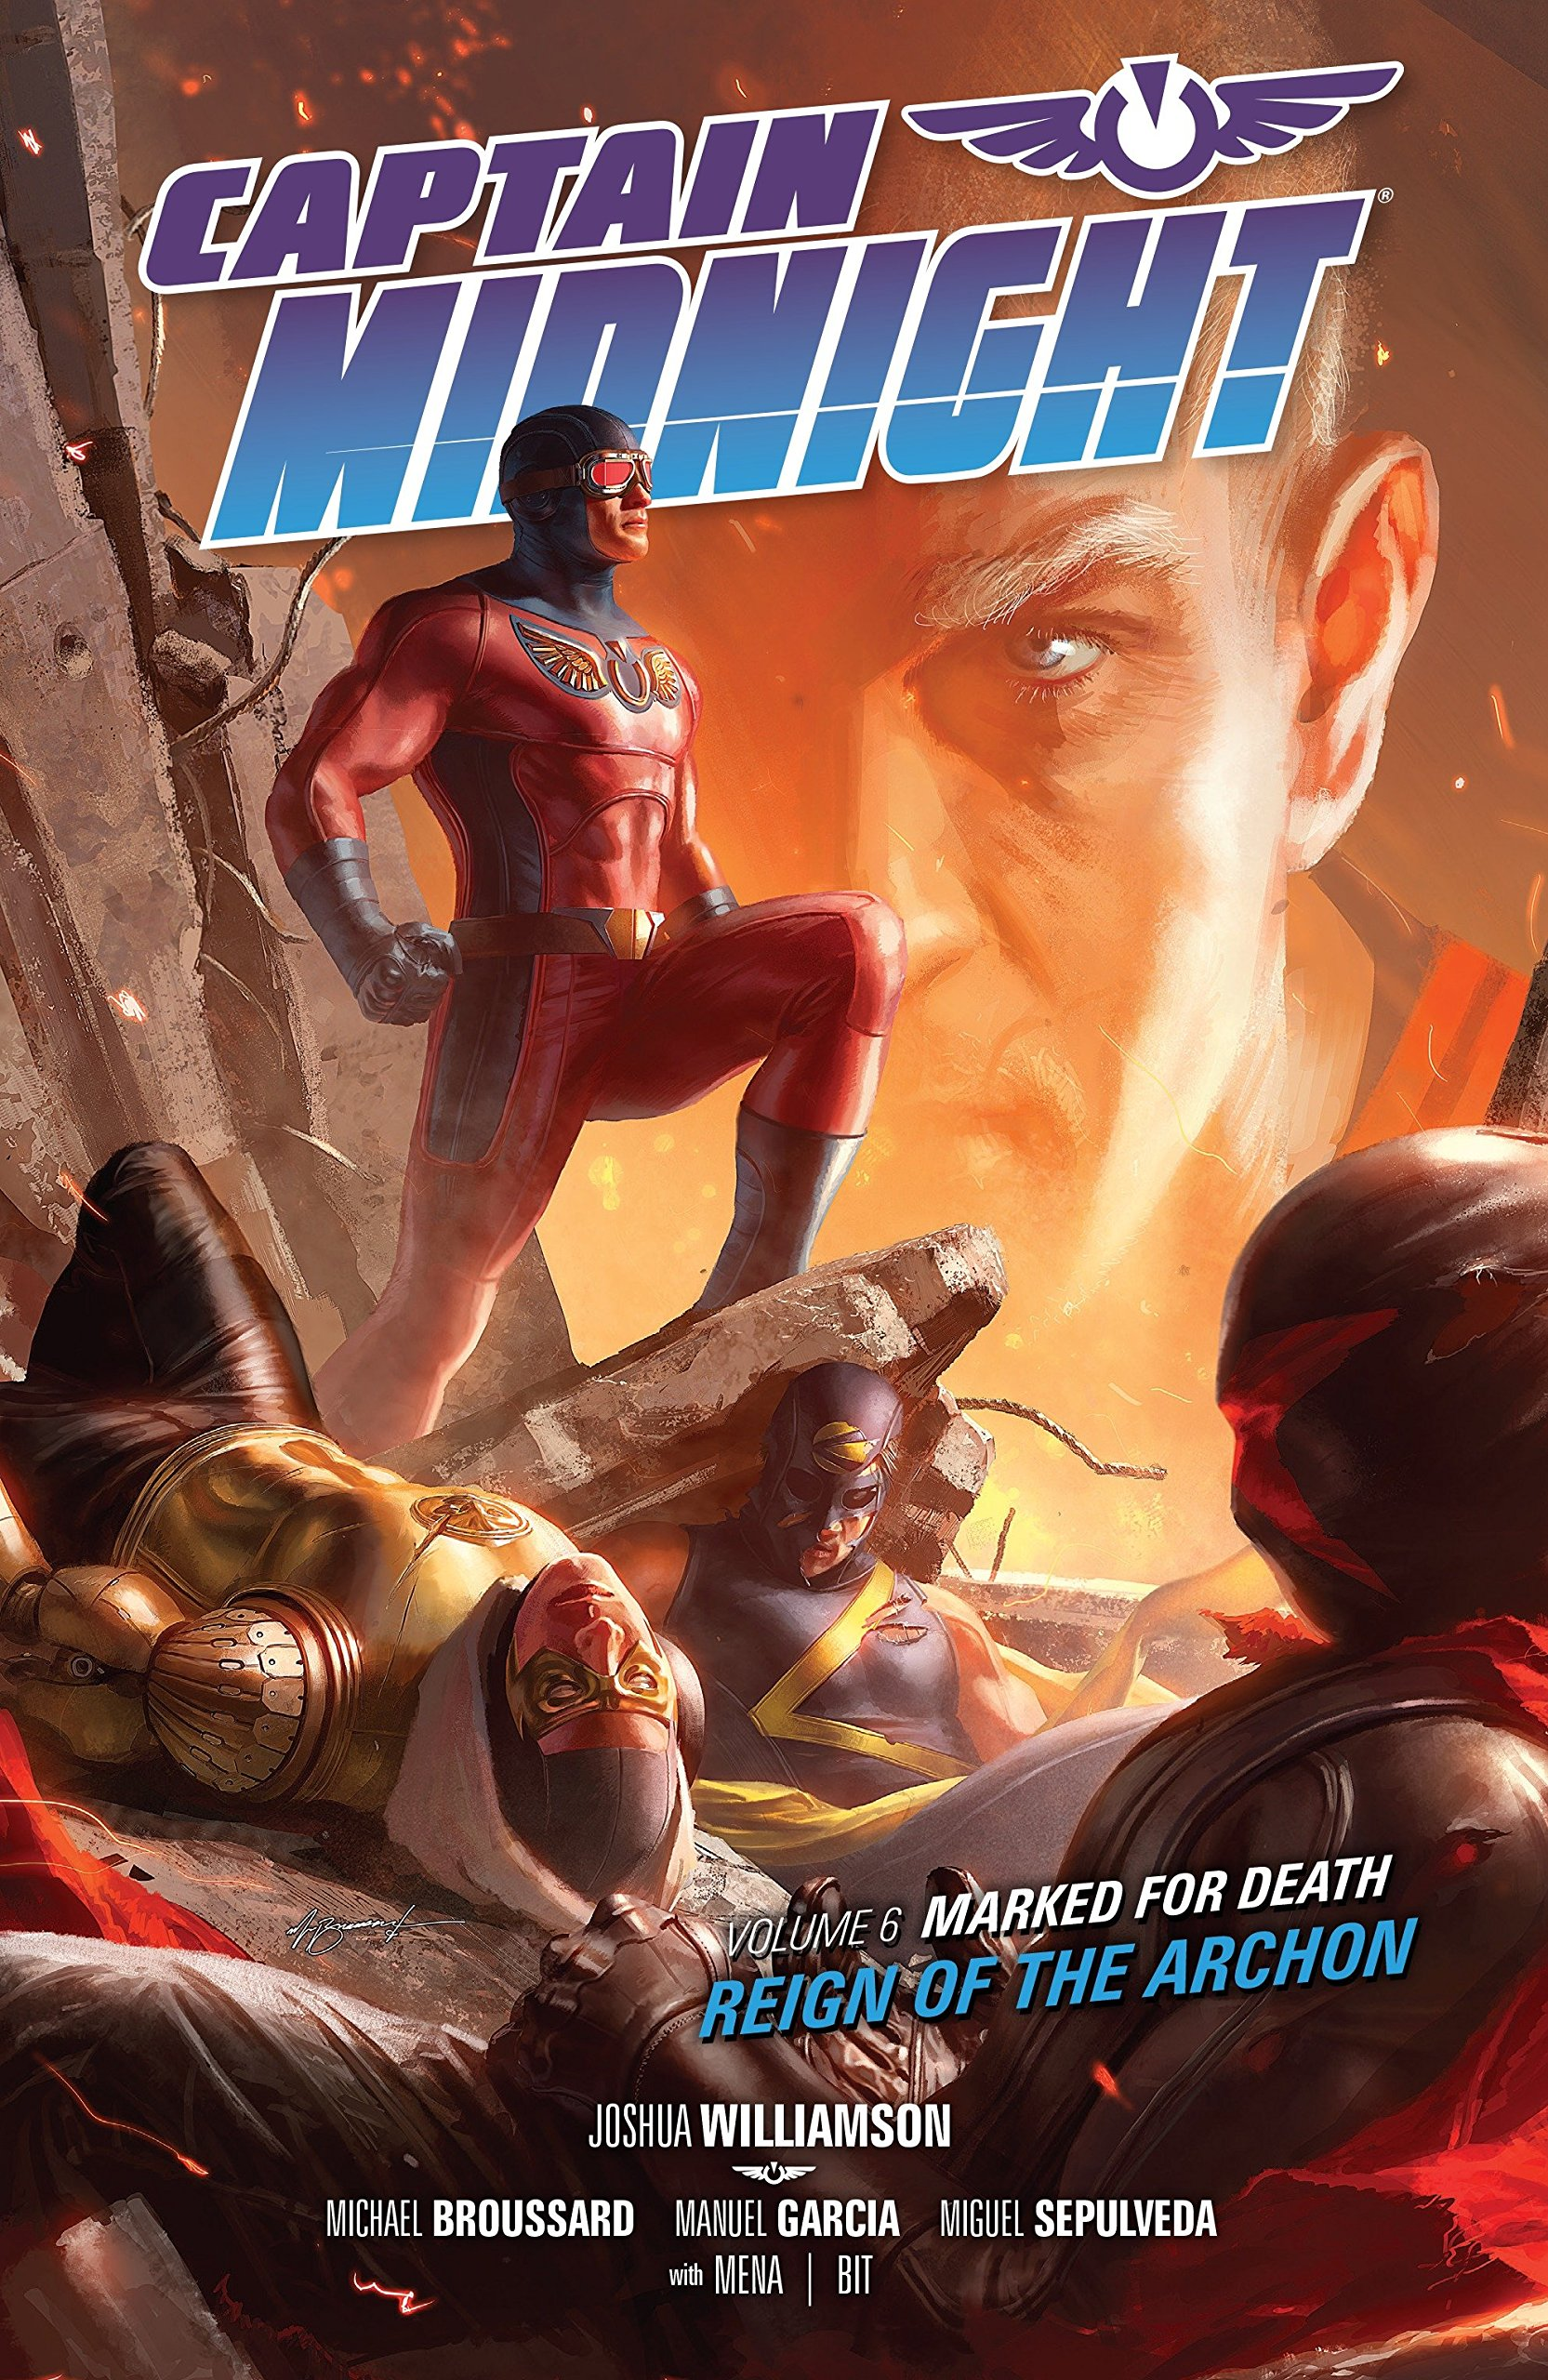 Captain Midnight Volume 6 Marked for Death--Reign of the Archon ebook